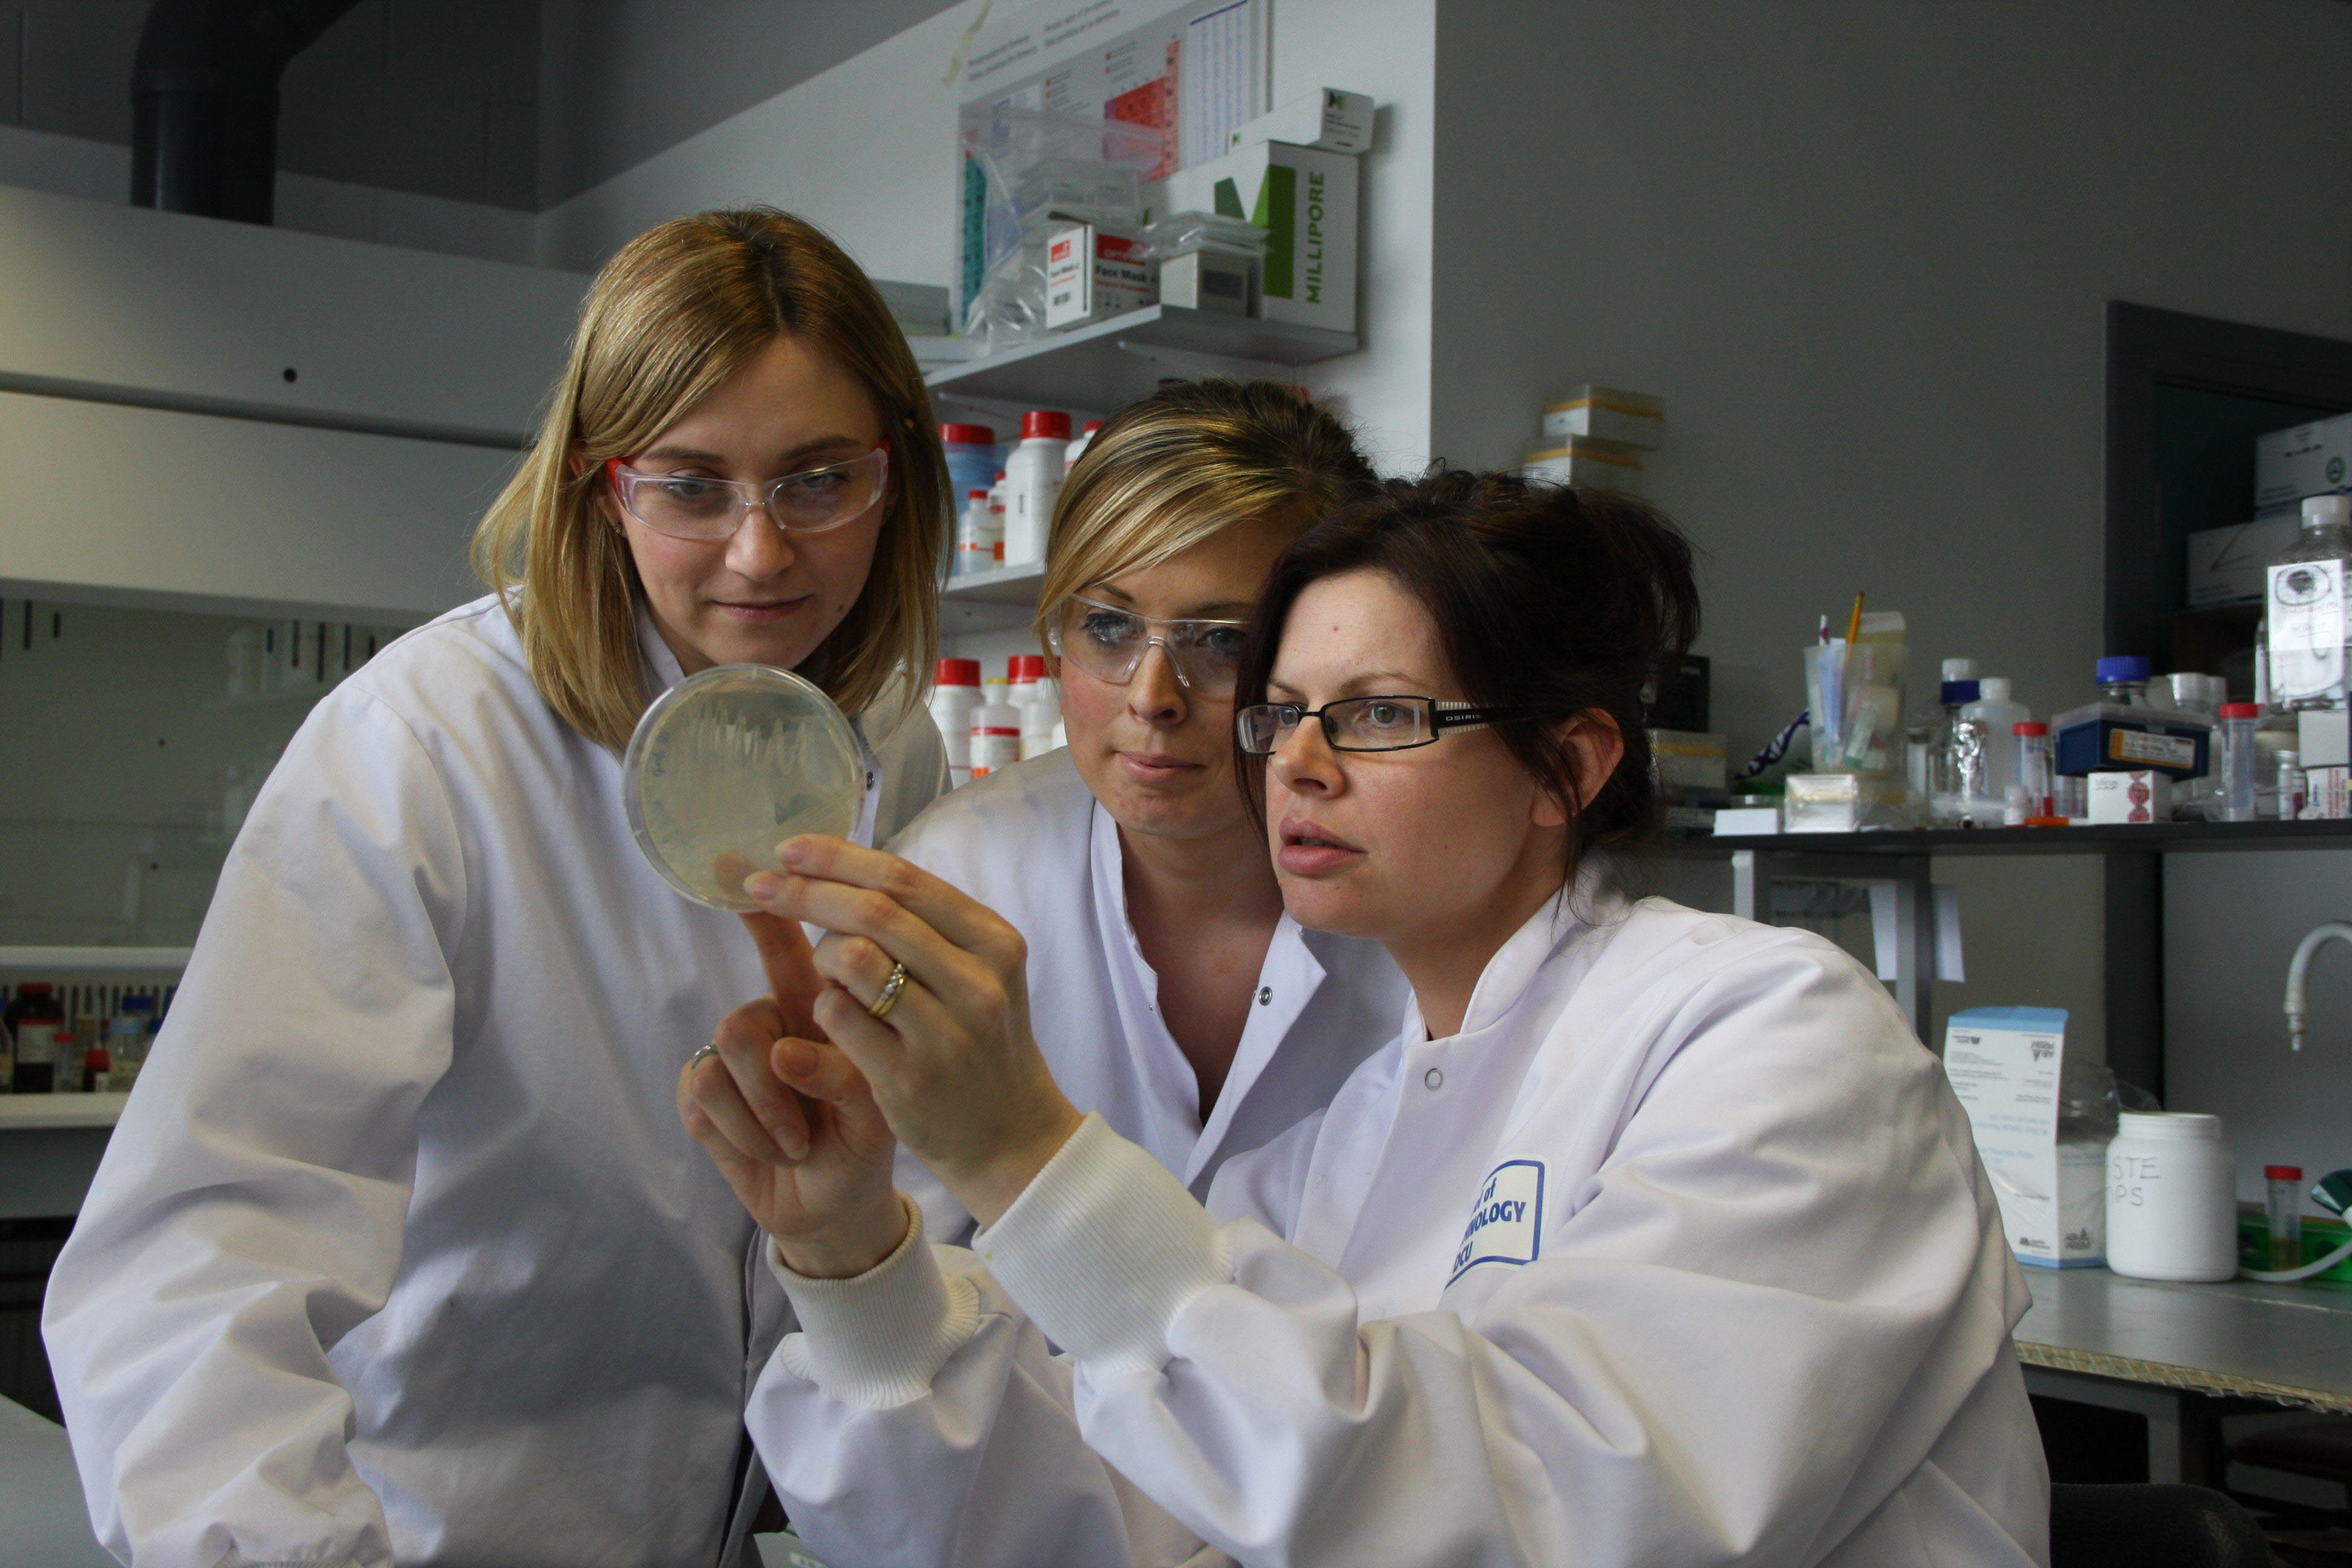 BioAT project, (Bioanalysis and Therapeutics PhD programme), Dublin City University.  Grant recipients under the ERDF co-funded S&E Regional Programme.